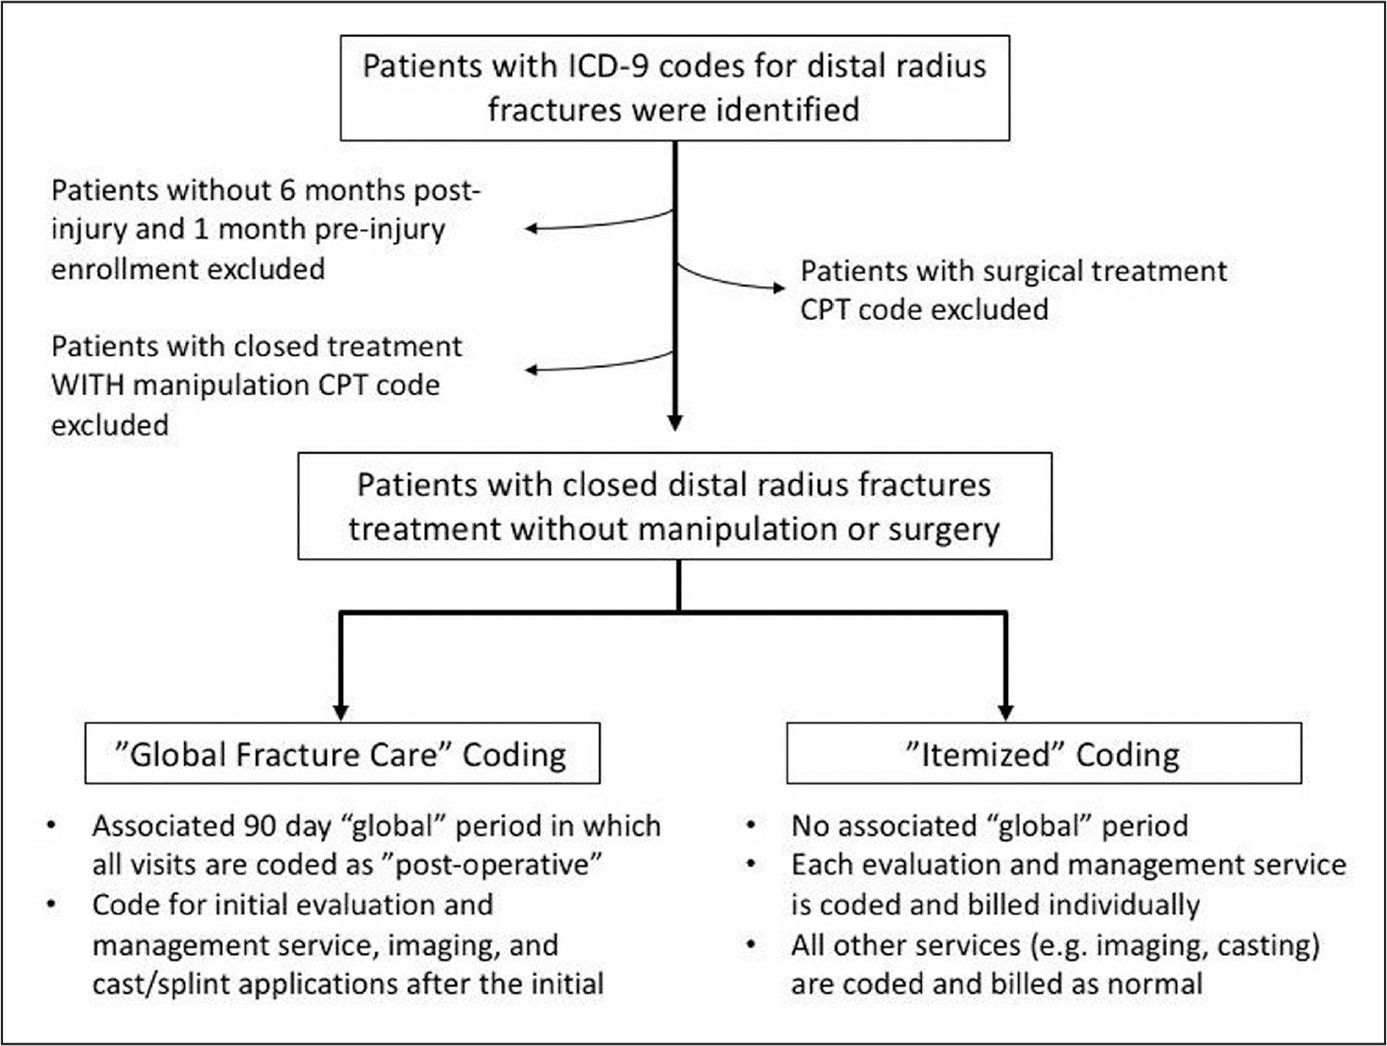 Flowchart demonstrating the strategy used to place patients into the global fracture care and itemized billing groups. Abbreviations: CPT, Current Procedural Terminology; ICD-9, International Classification of Diseases, Ninth Revision.